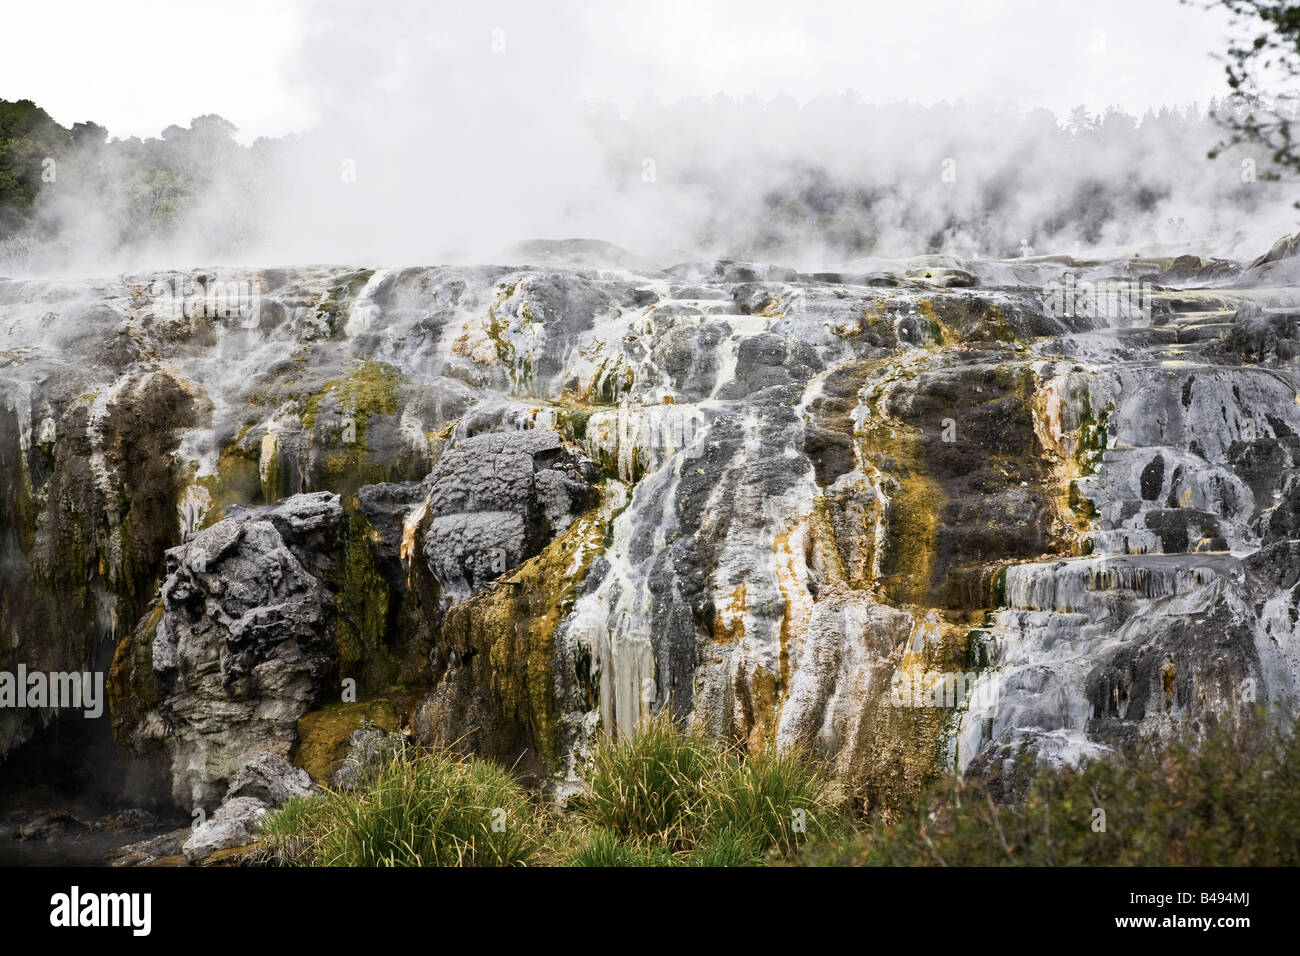 Hot springs in Rotorua, New Zealand - Stock Image